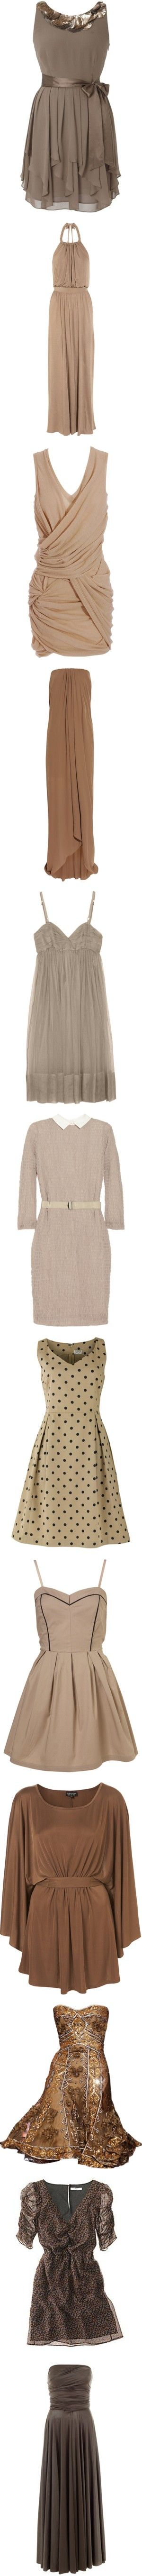 """Brown Dresses"" by rakelp4 ❤ liked on Polyvore"